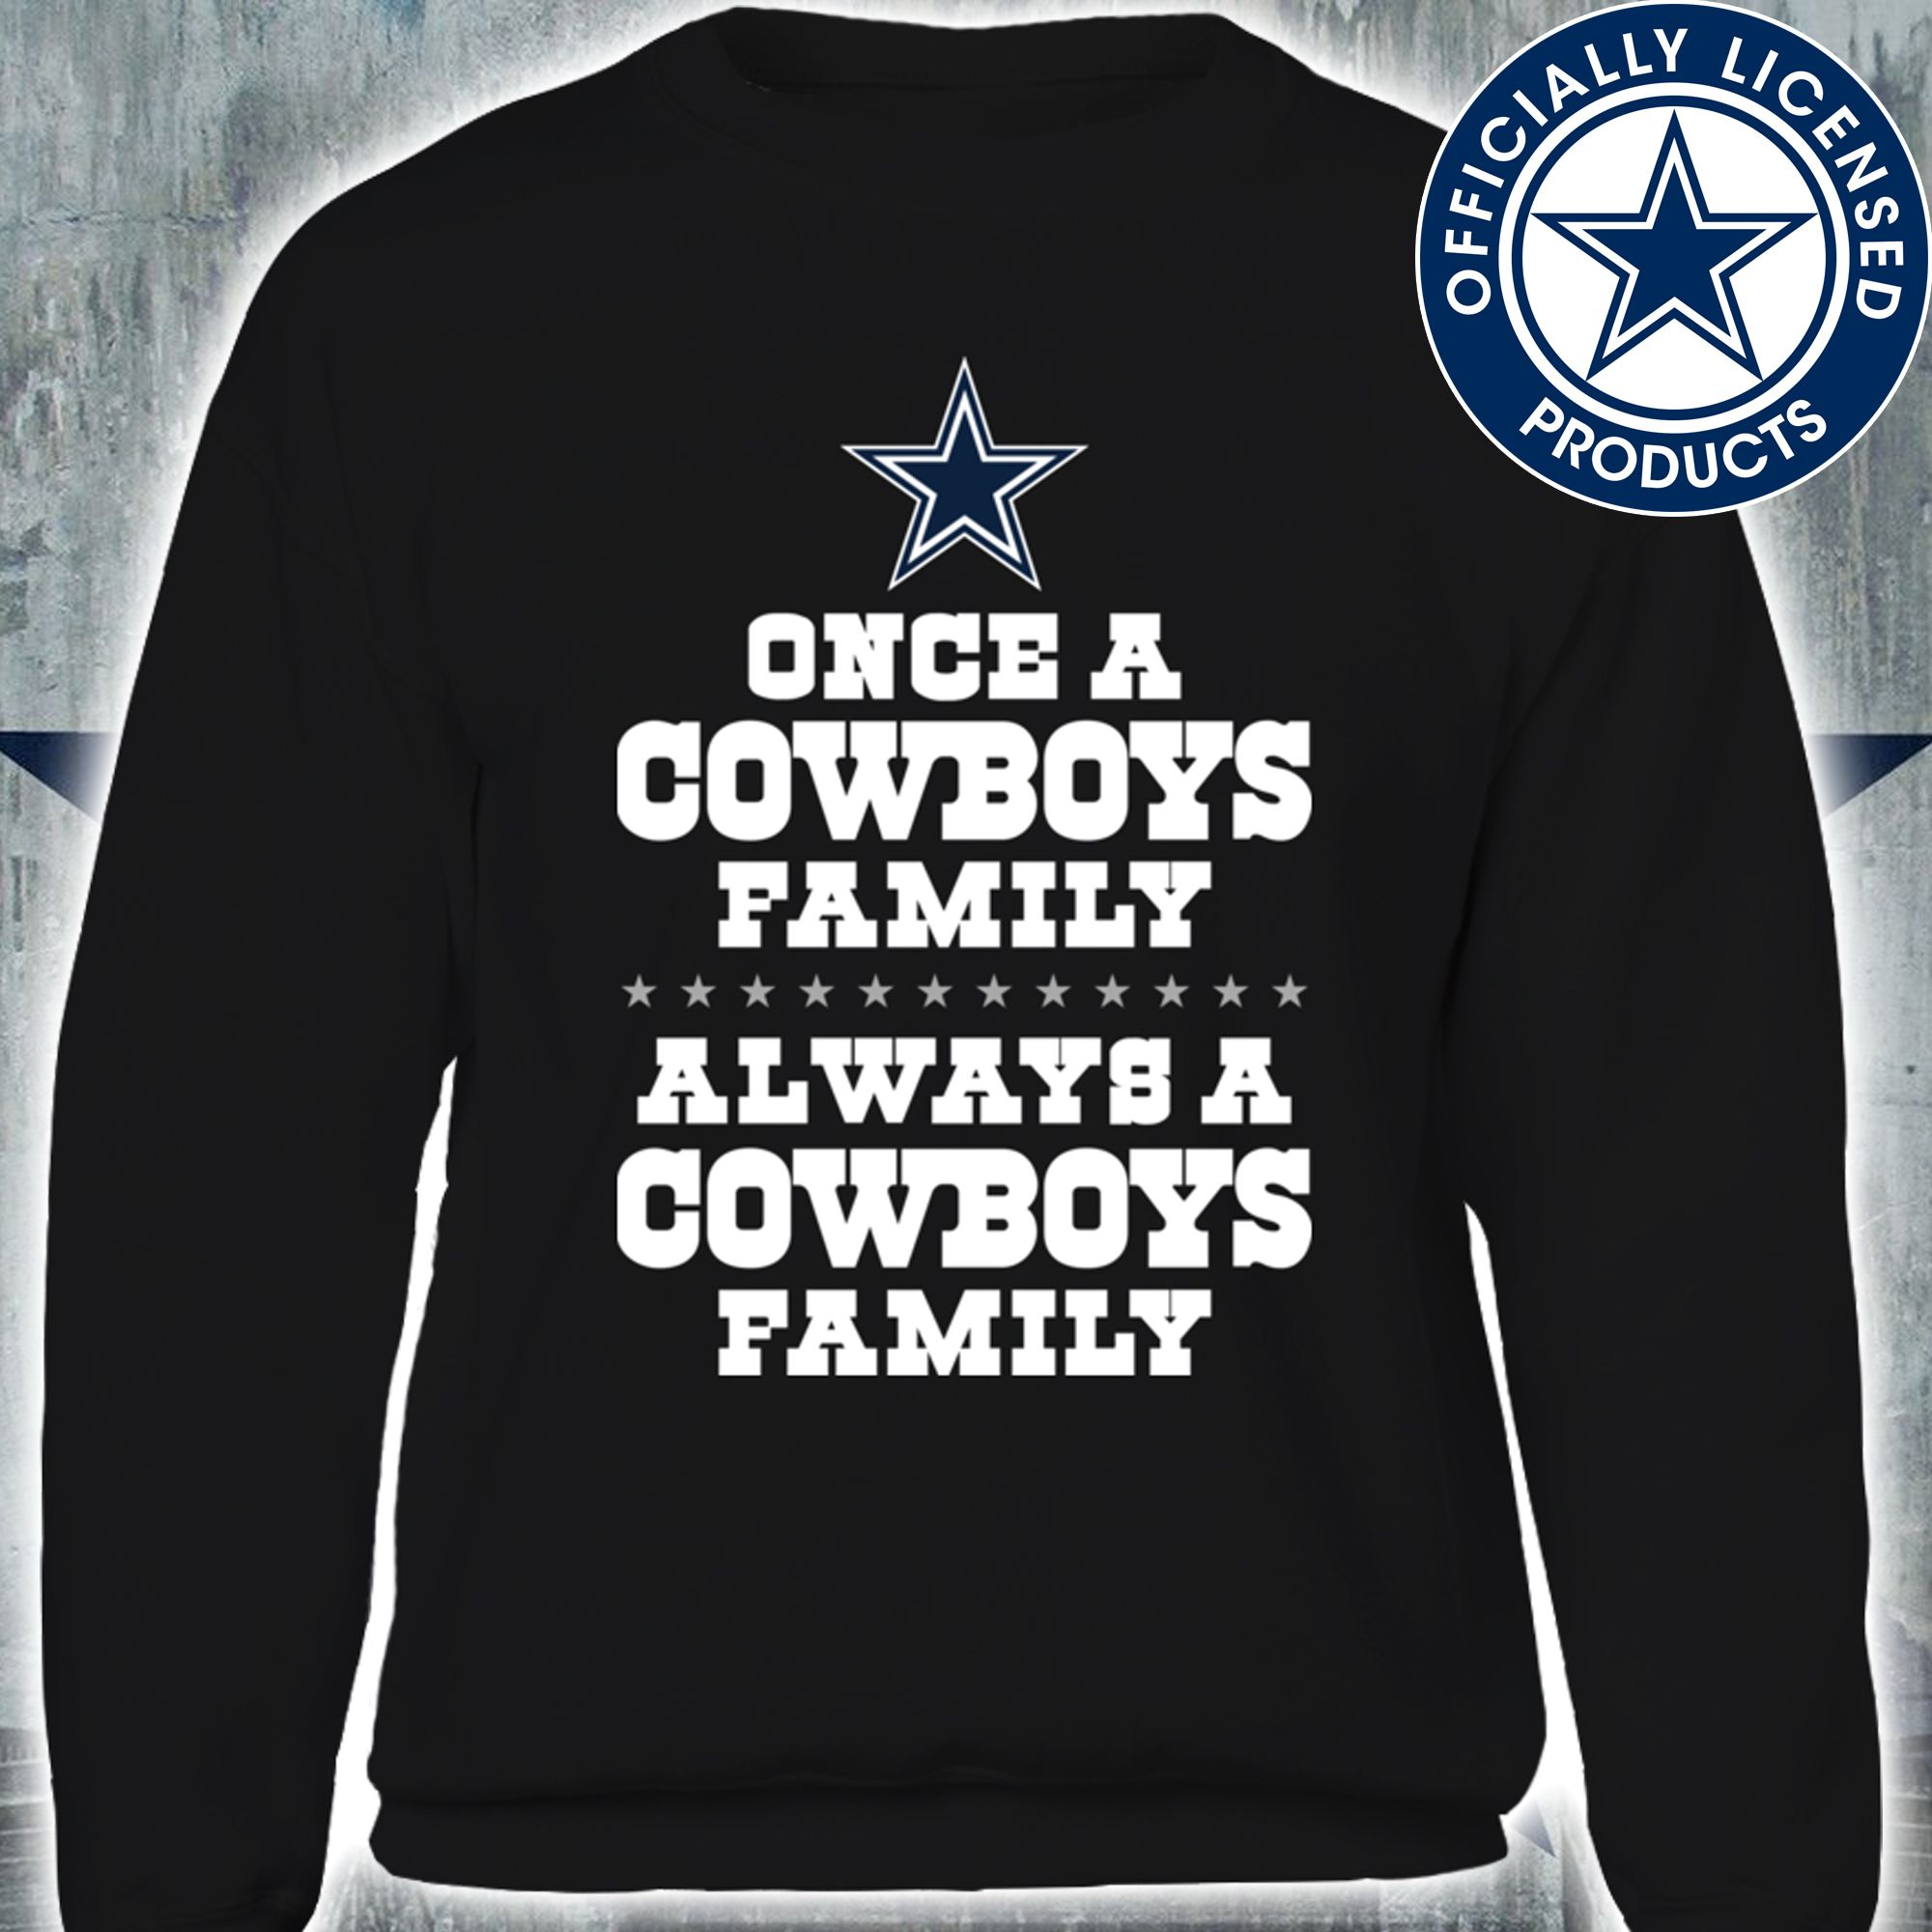 detailed look b6ae1 7e2e5 Once a Cowboys Family Always a Cowboys Family | Dallas ...